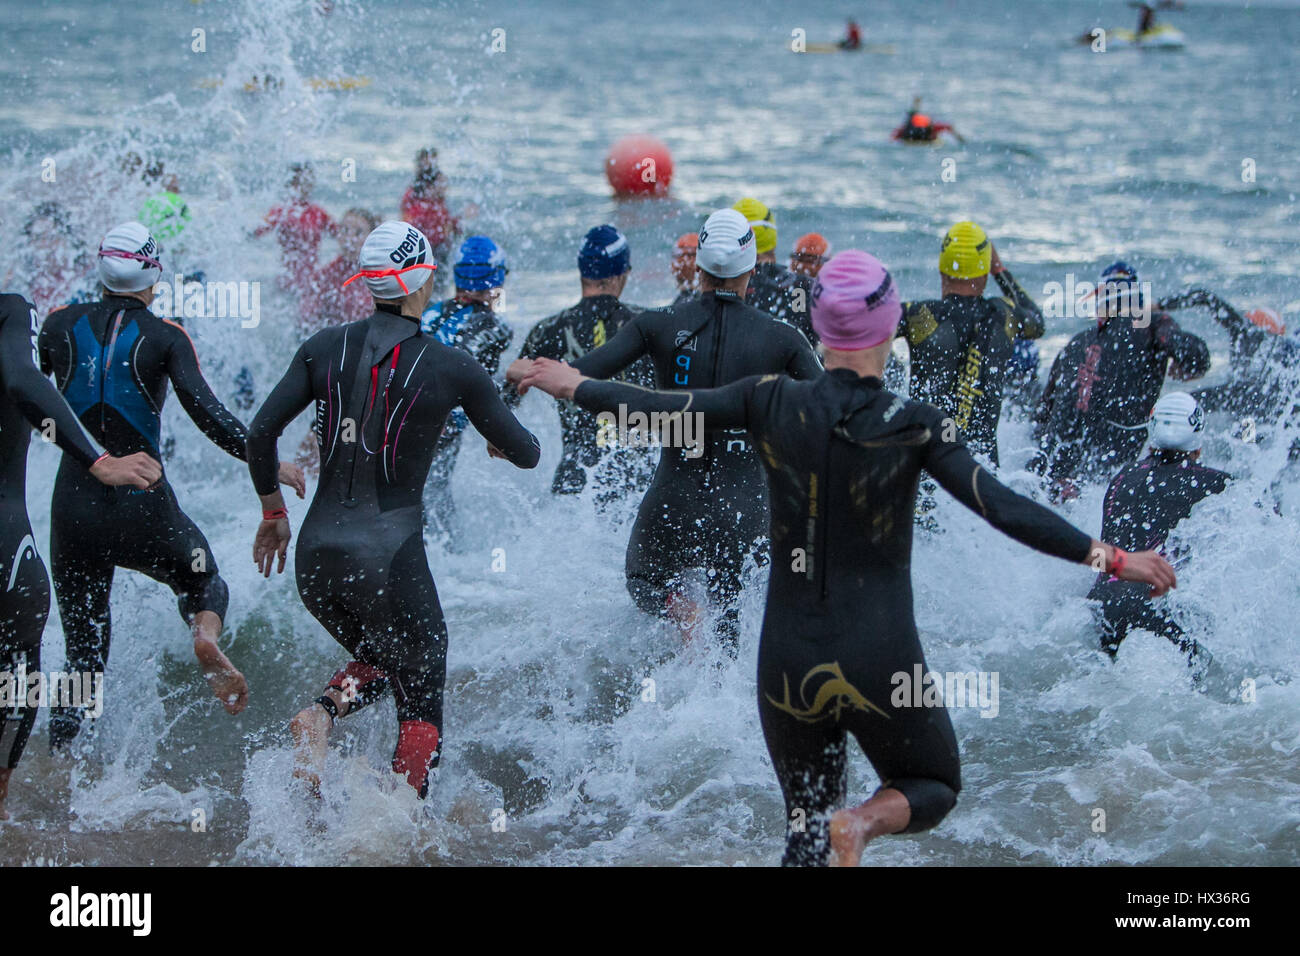 People take part in Ironman Wales, 2015, Tenby, Pembrokeshire, Wales, UK - Stock Image